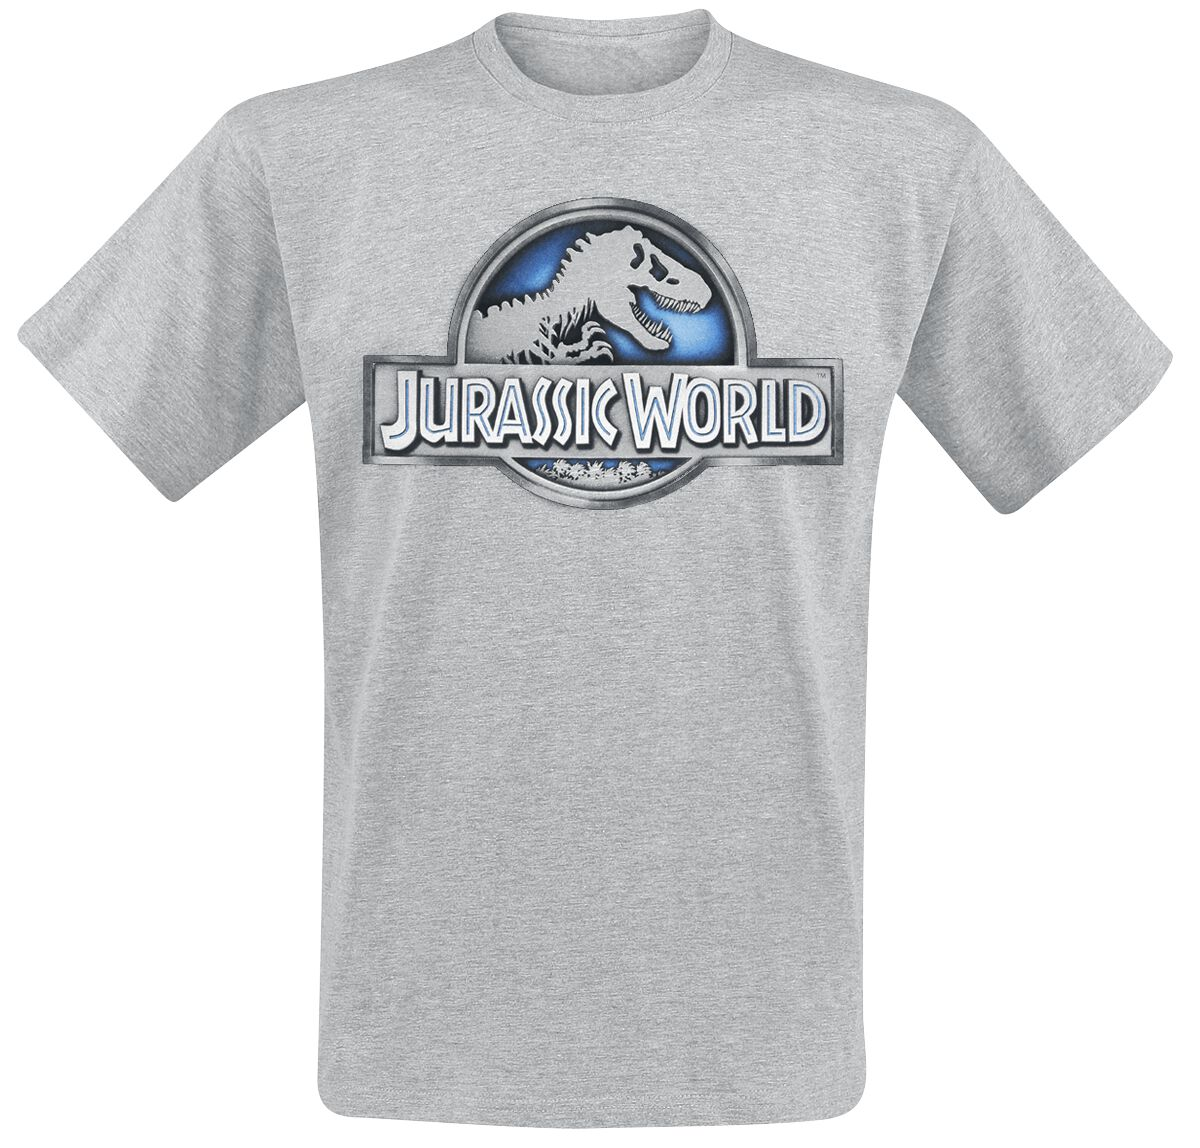 Image of   Jurassic World Logo T-Shirt blandet lys grå